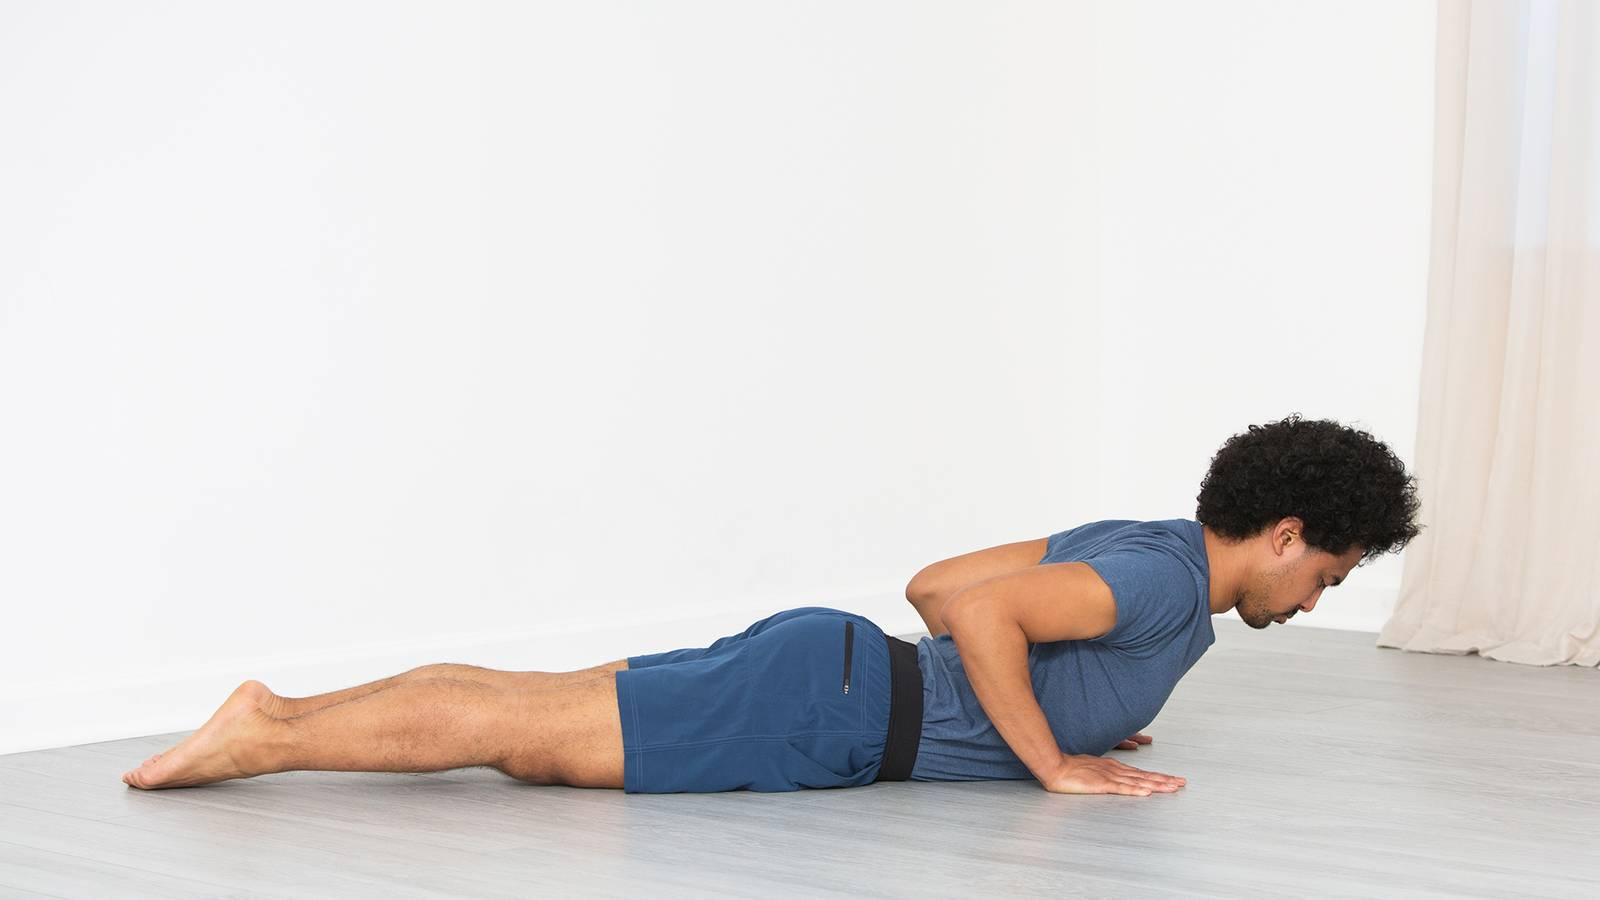 Yoga Stretches For Kyphosis